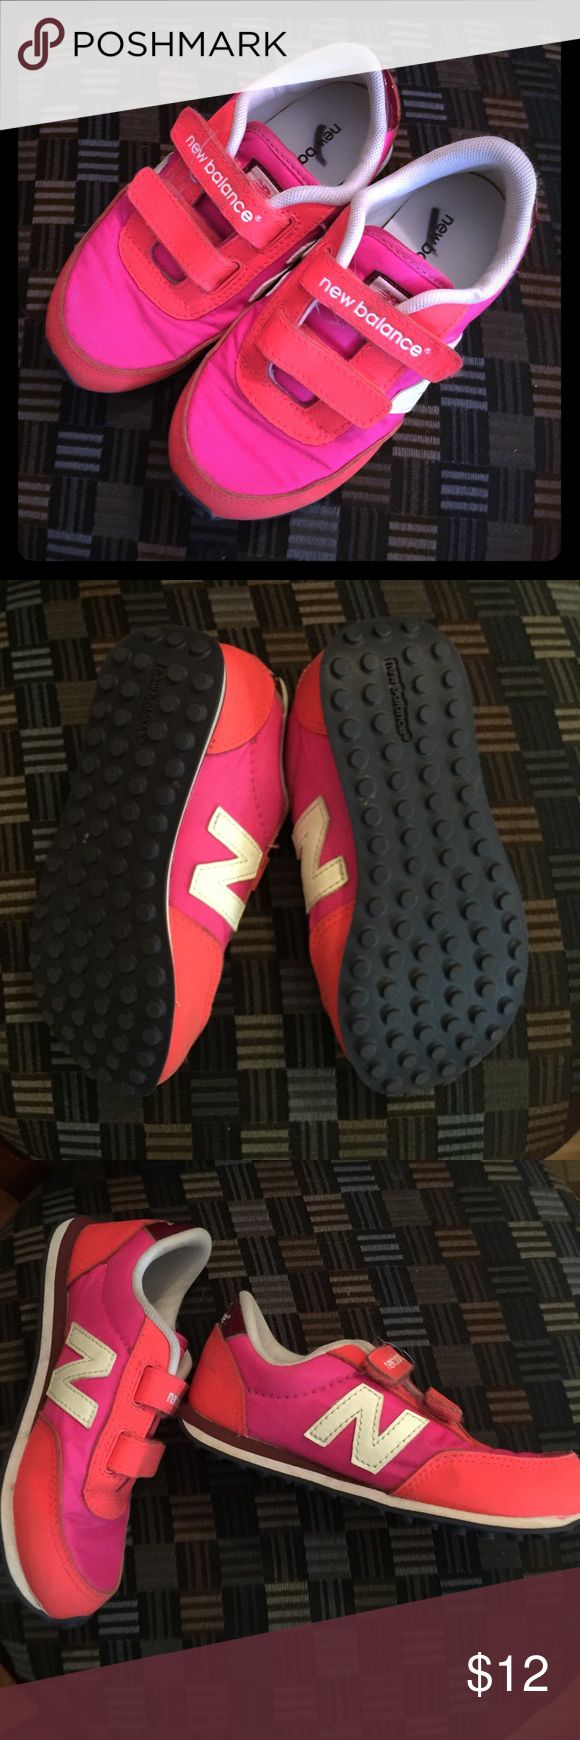 New balance girls tennis shoes My girl worn these one time. Like new New Balance Shoes Sneakers